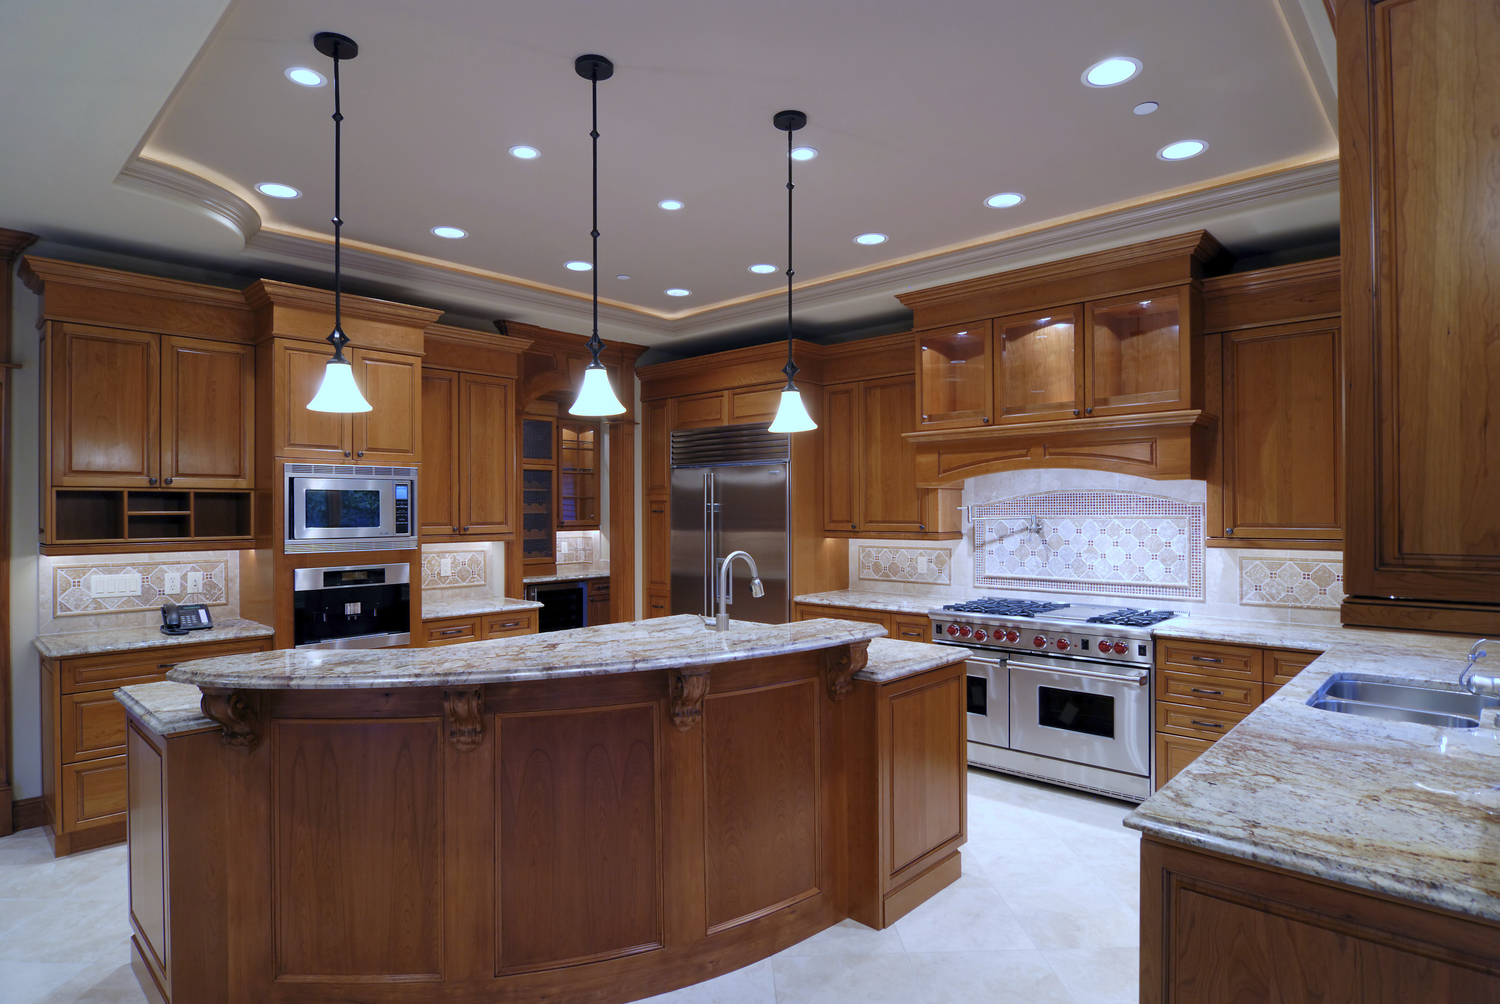 Kitchen Renovations — Vancouver Home Renovations & General Contractor